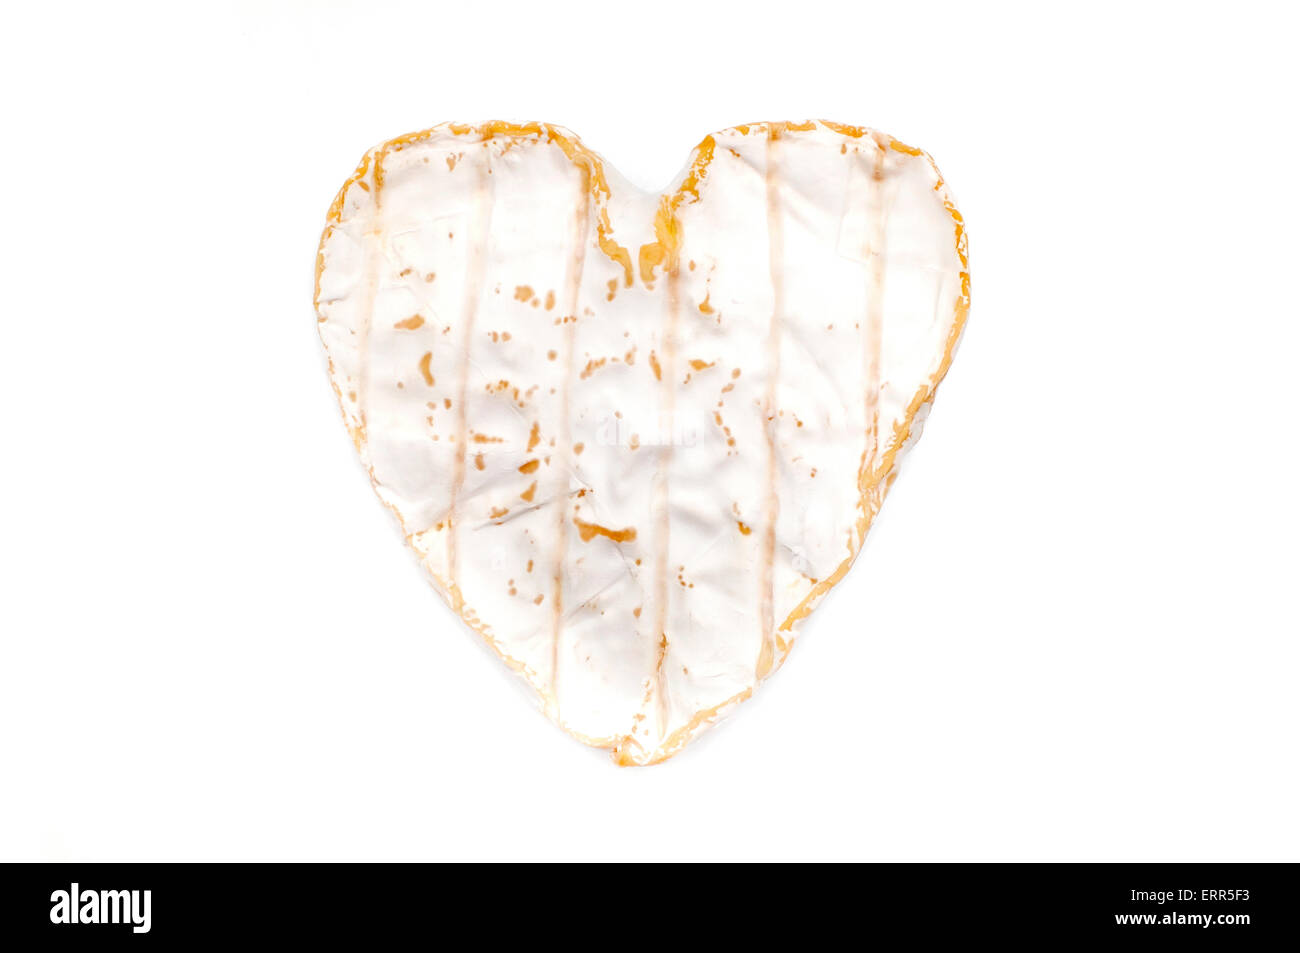 Coeur de Neufchâtel on a white background - Stock Image